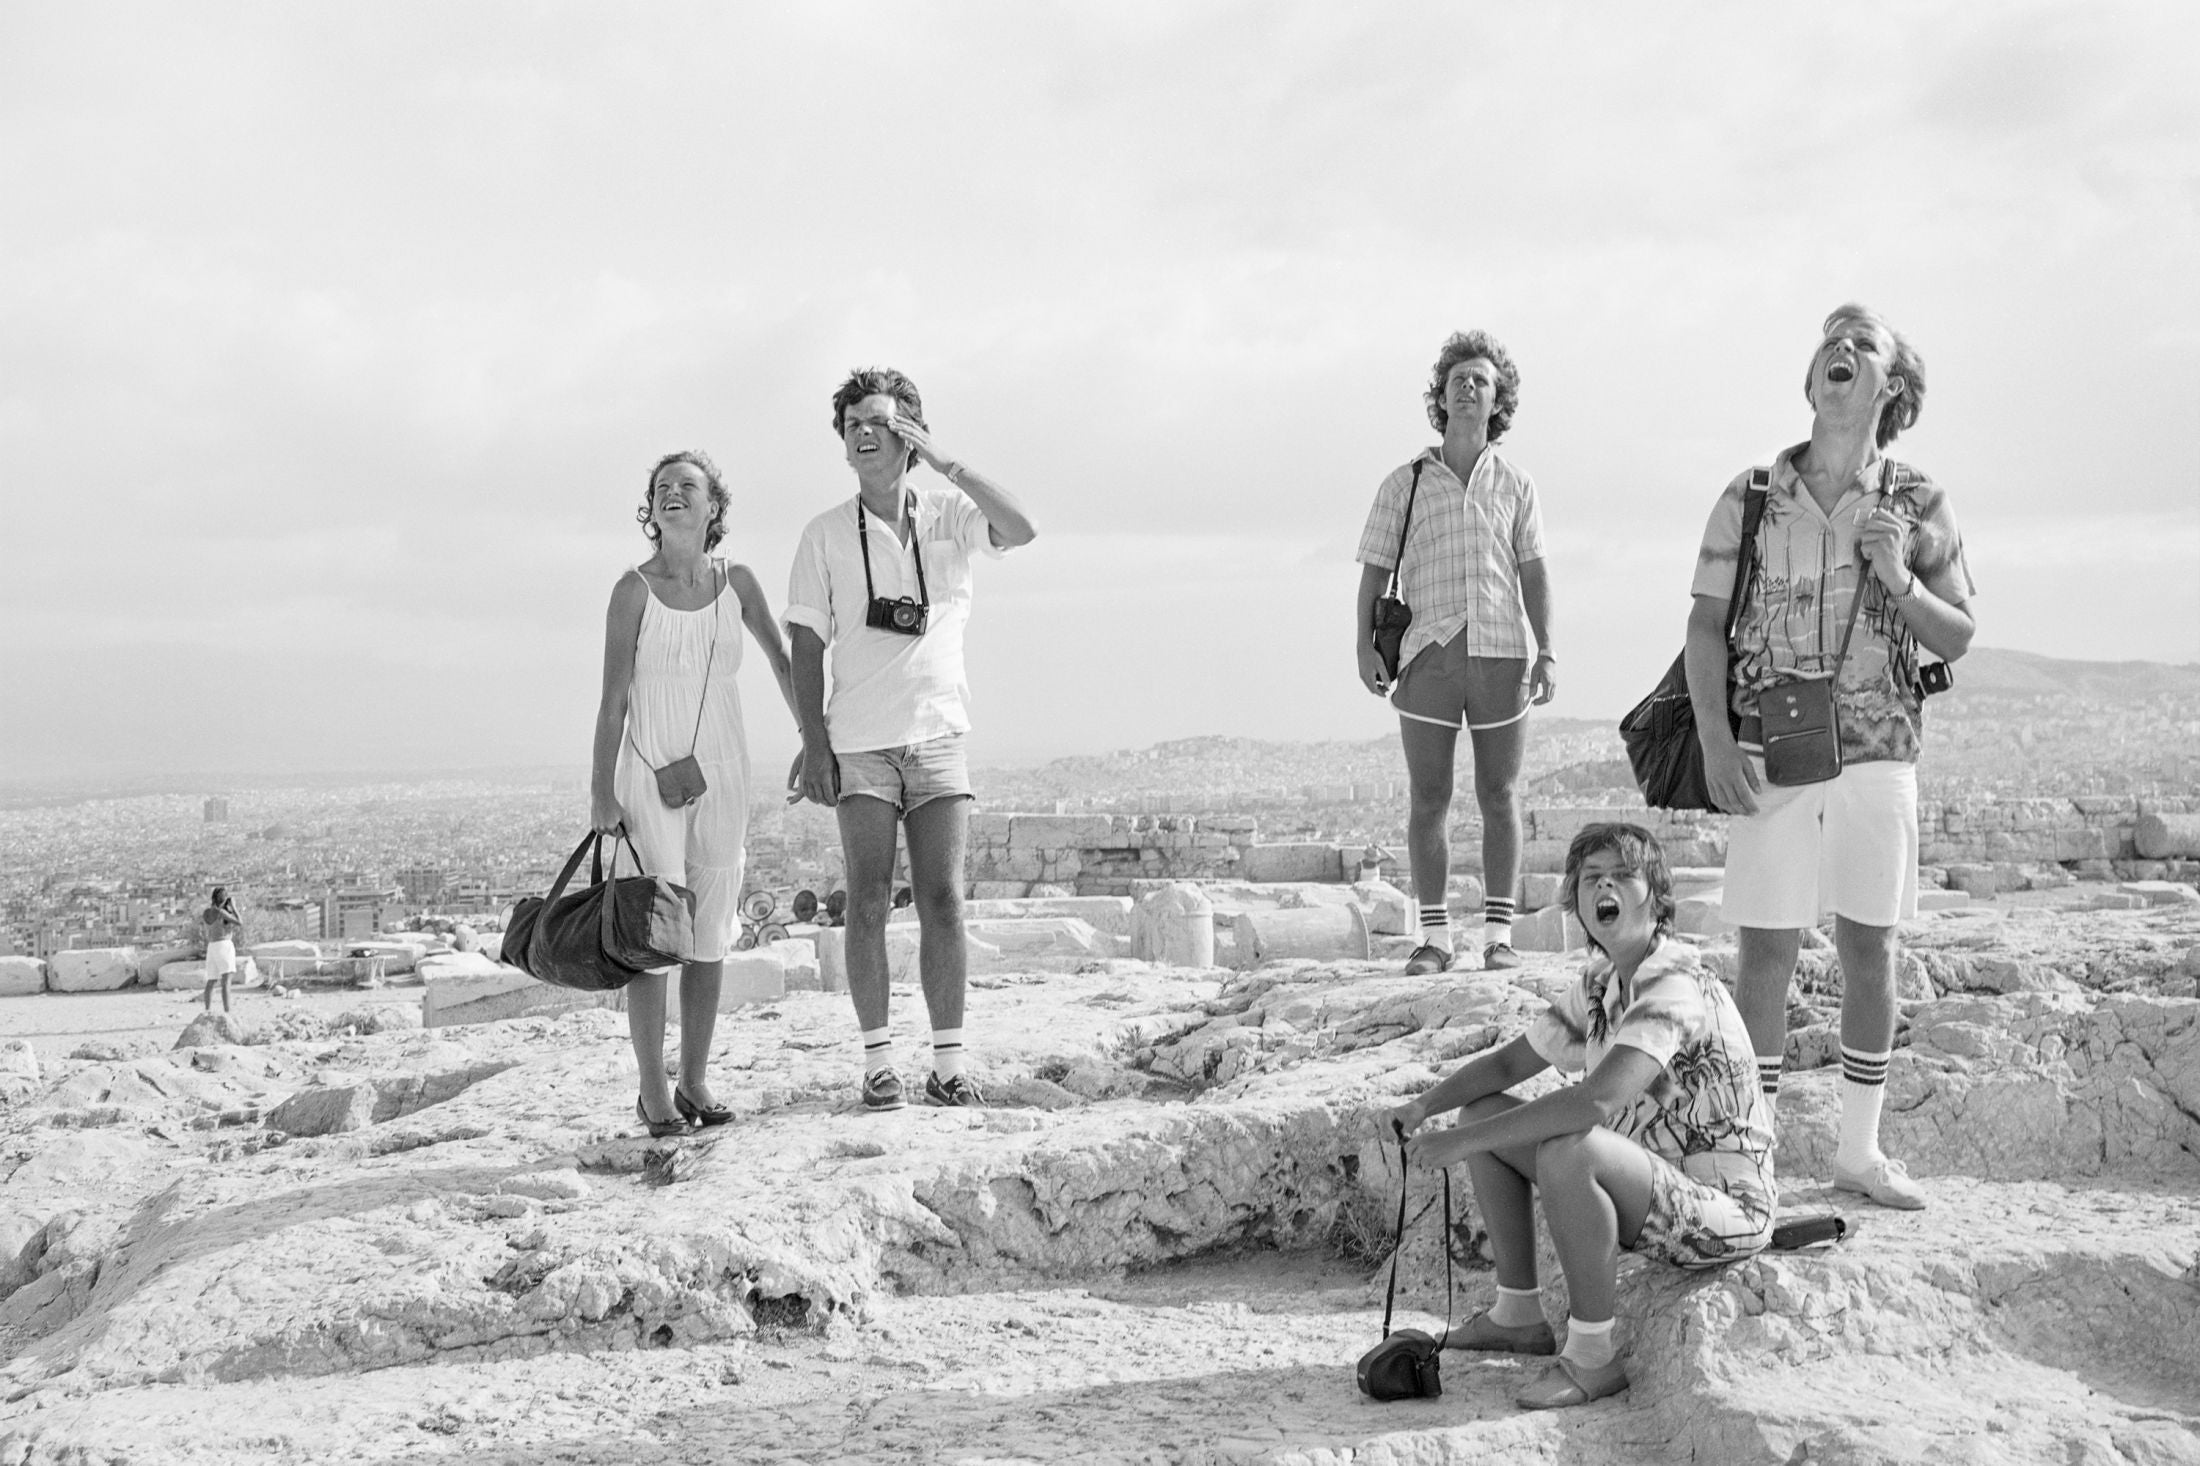 <b>On the Acropolis </b><br>Tod Papageorge